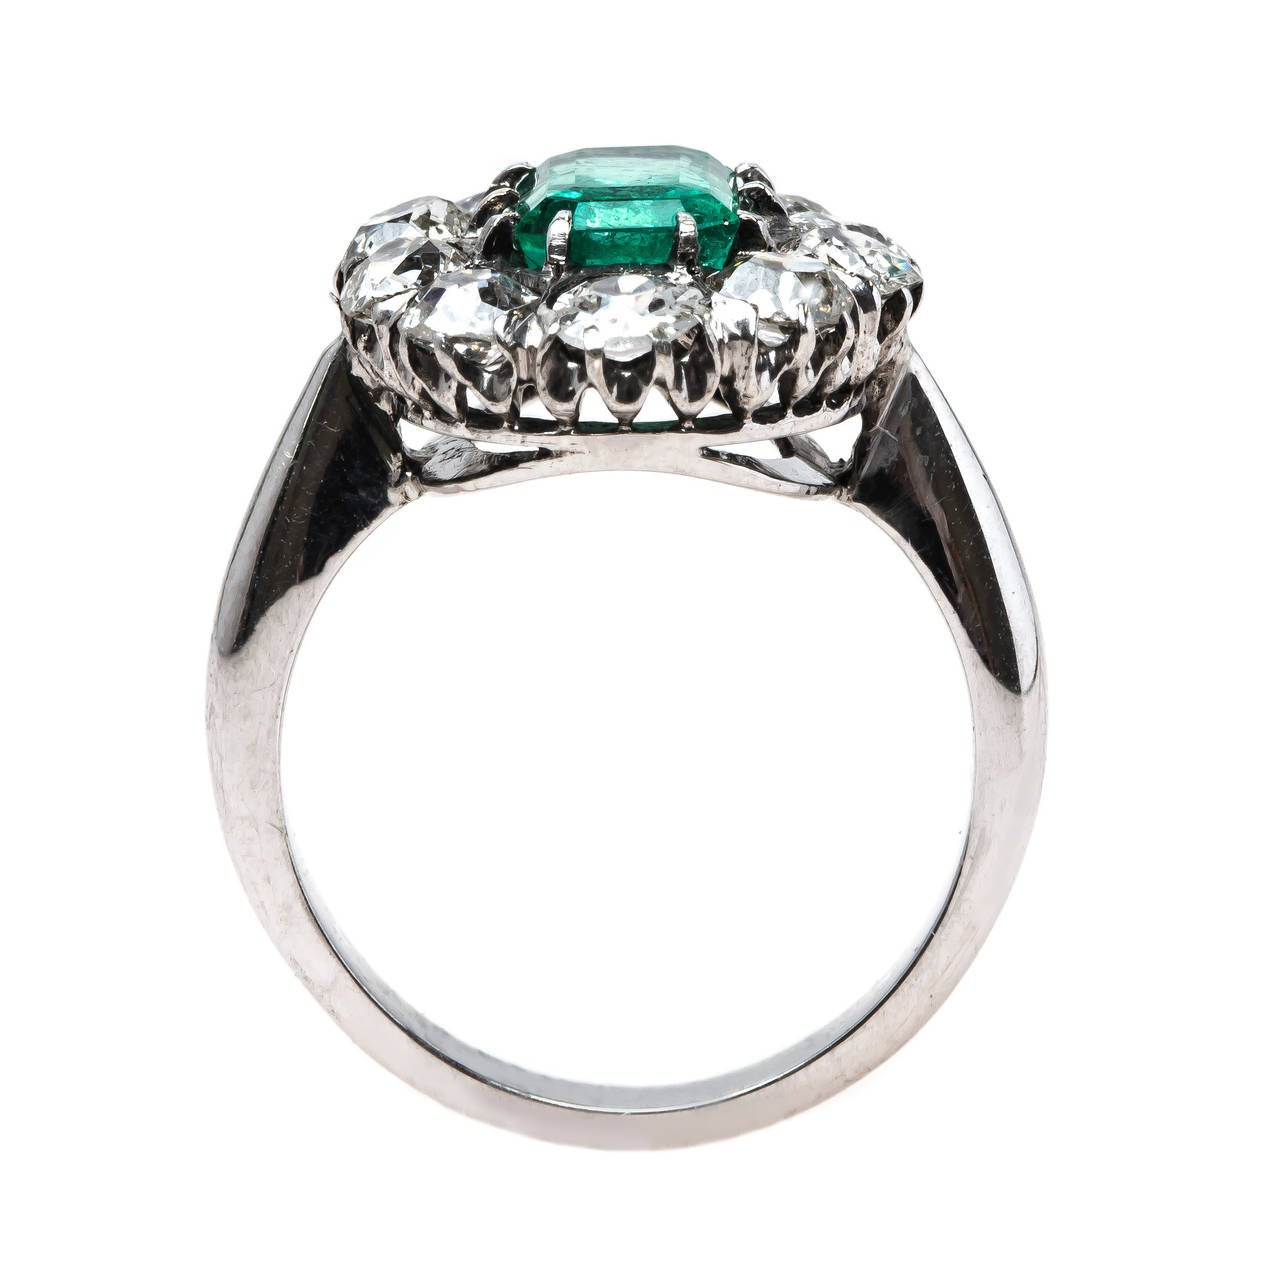 columbian emerald engagement ring with sparkling mine